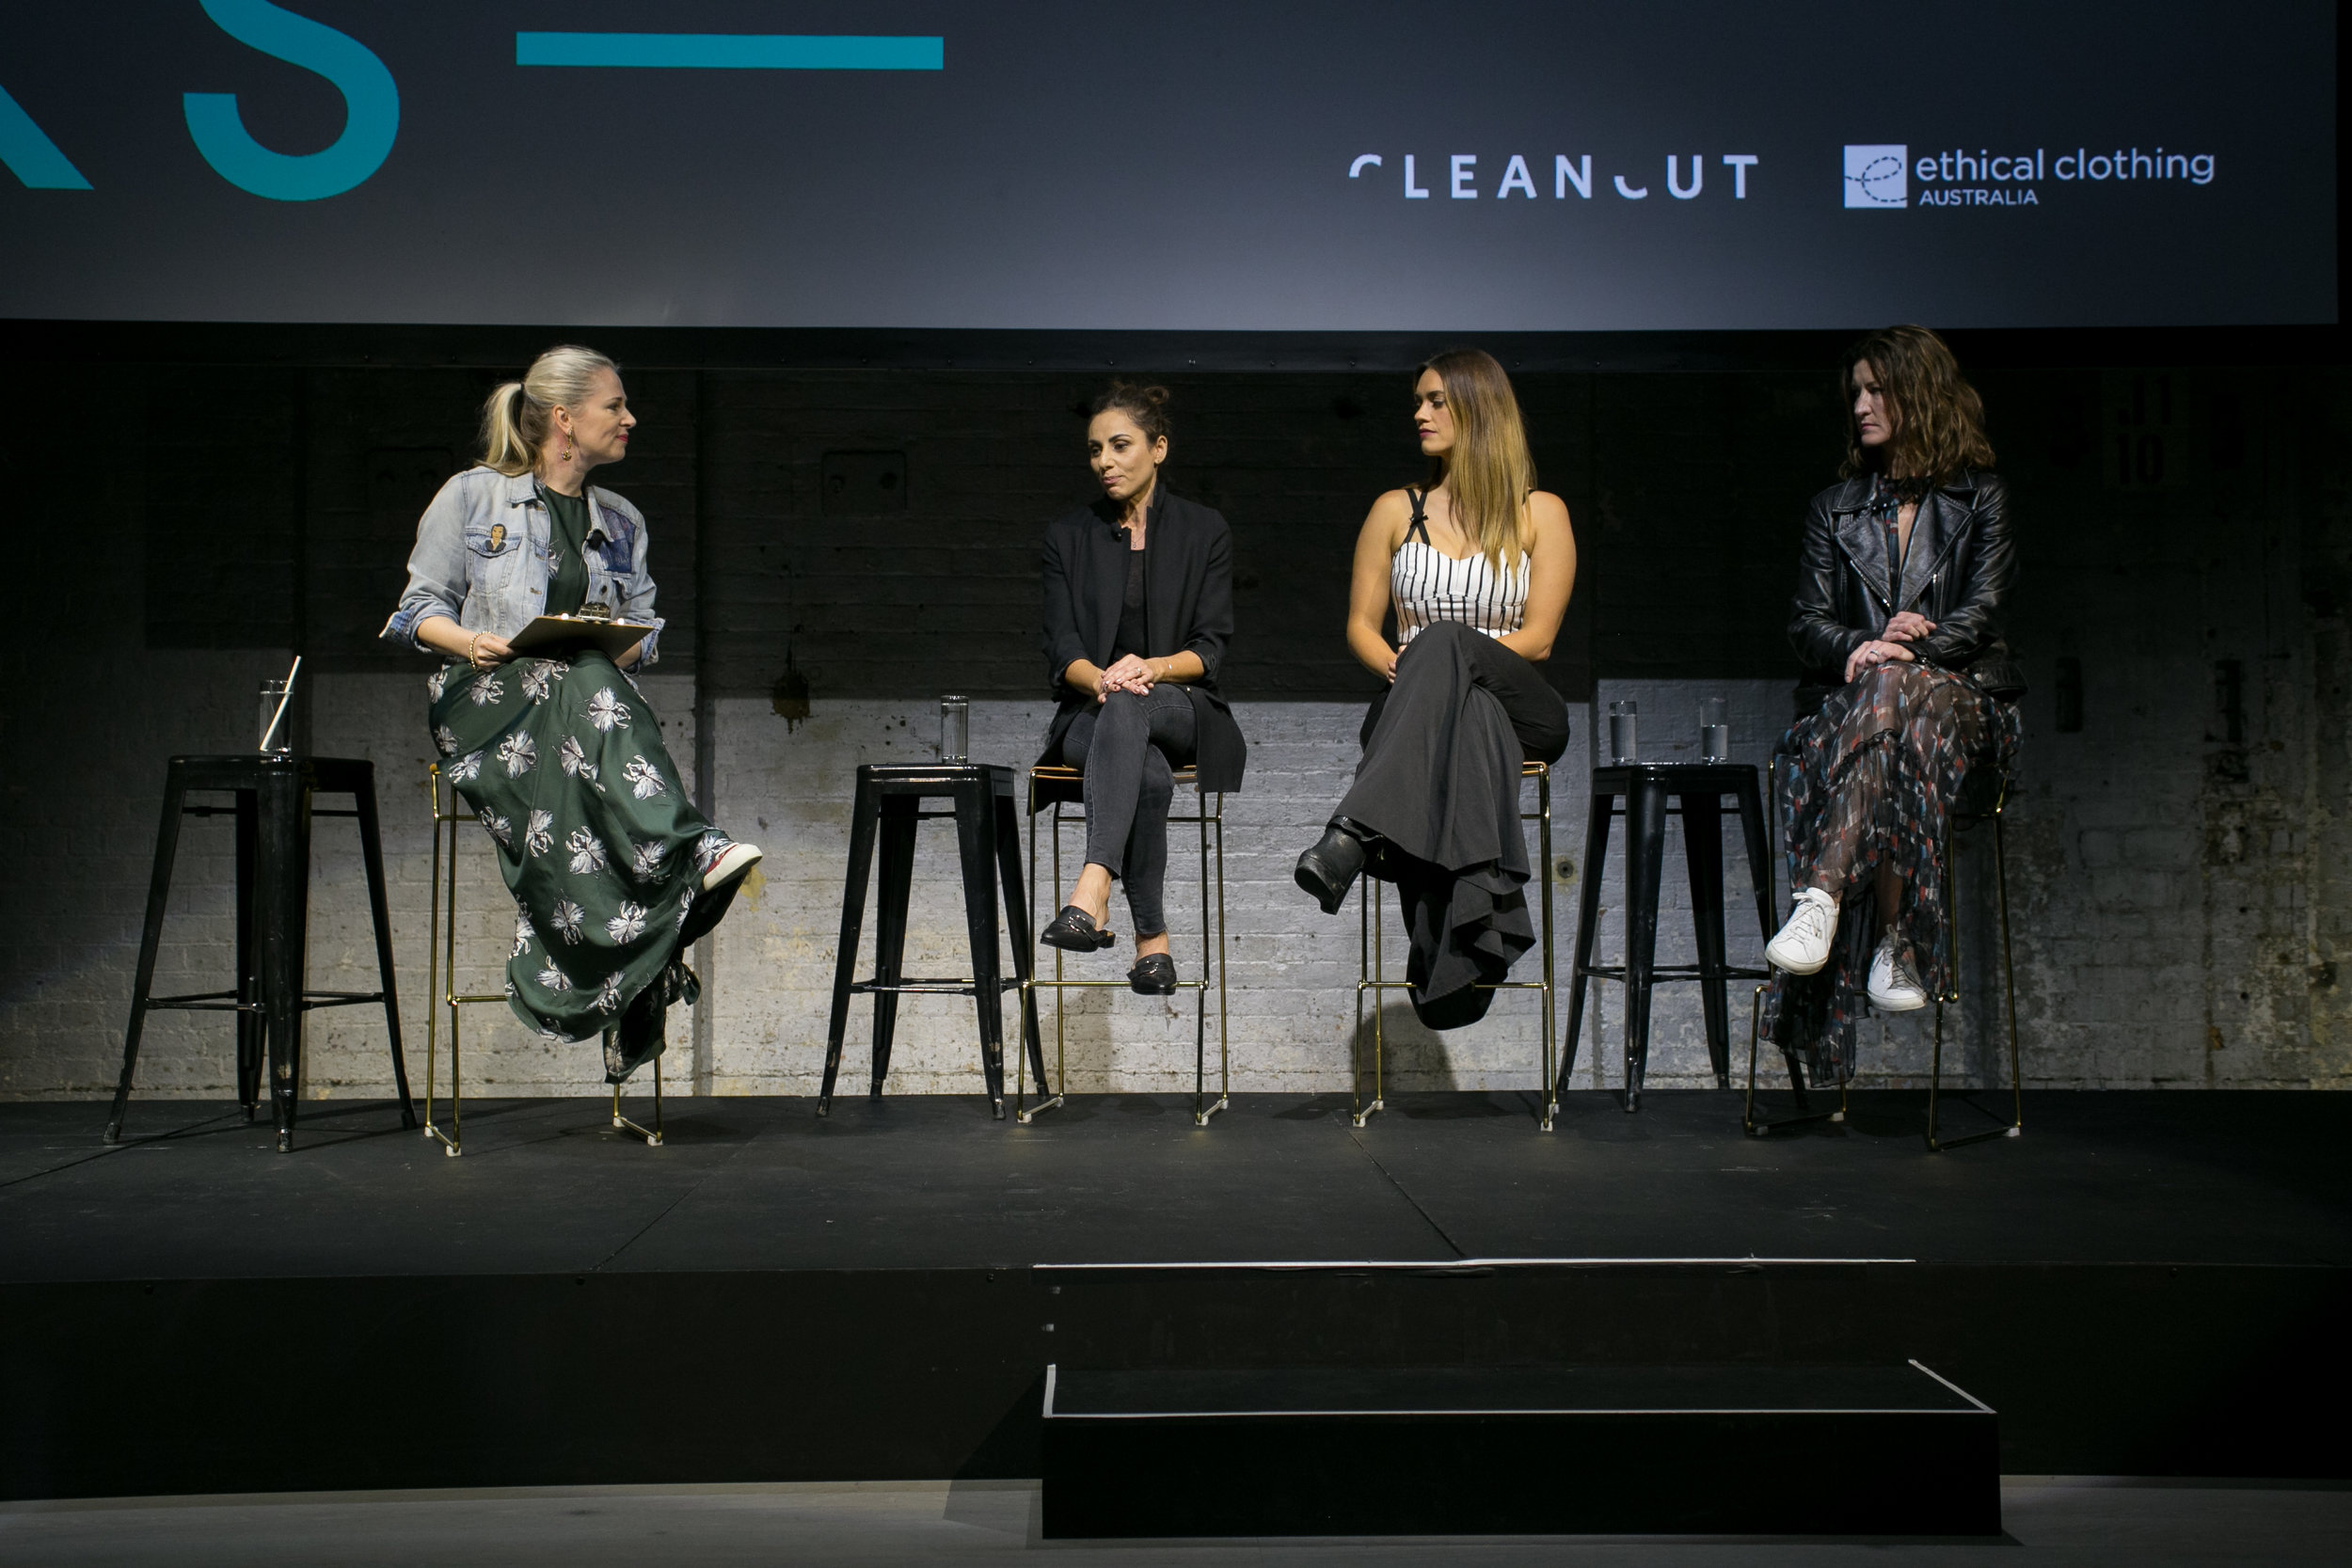 Panel Discussion at this year's FUTURE TALKS. From left, Clare Press, Margie Woods, Laura Wells and Gabrielle manning.